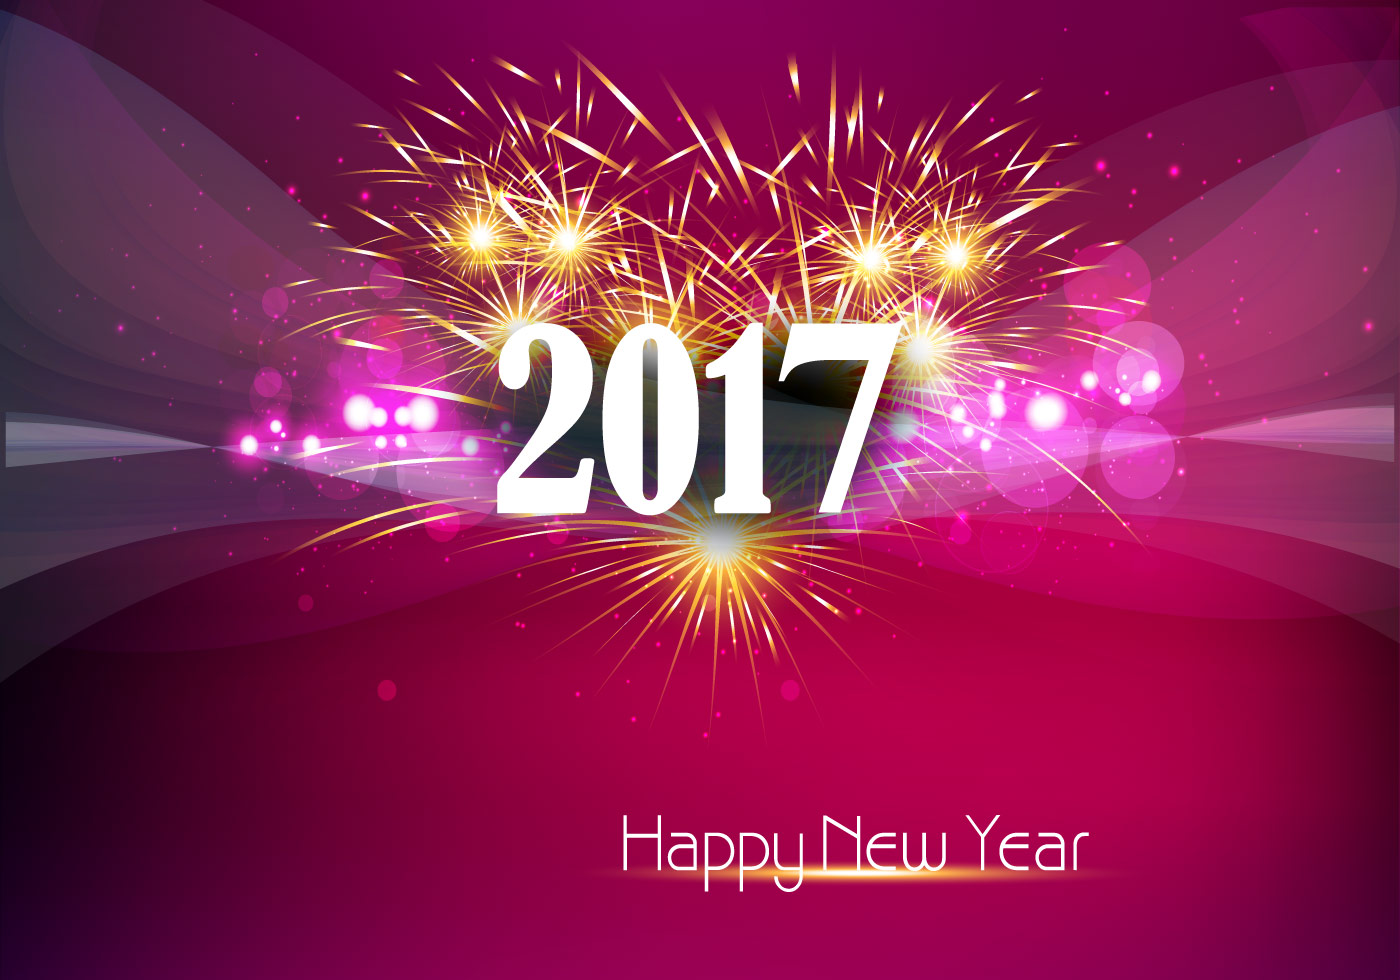 Happy New Year 2017 Banner With Fire Cracker - Download Free Vector ...